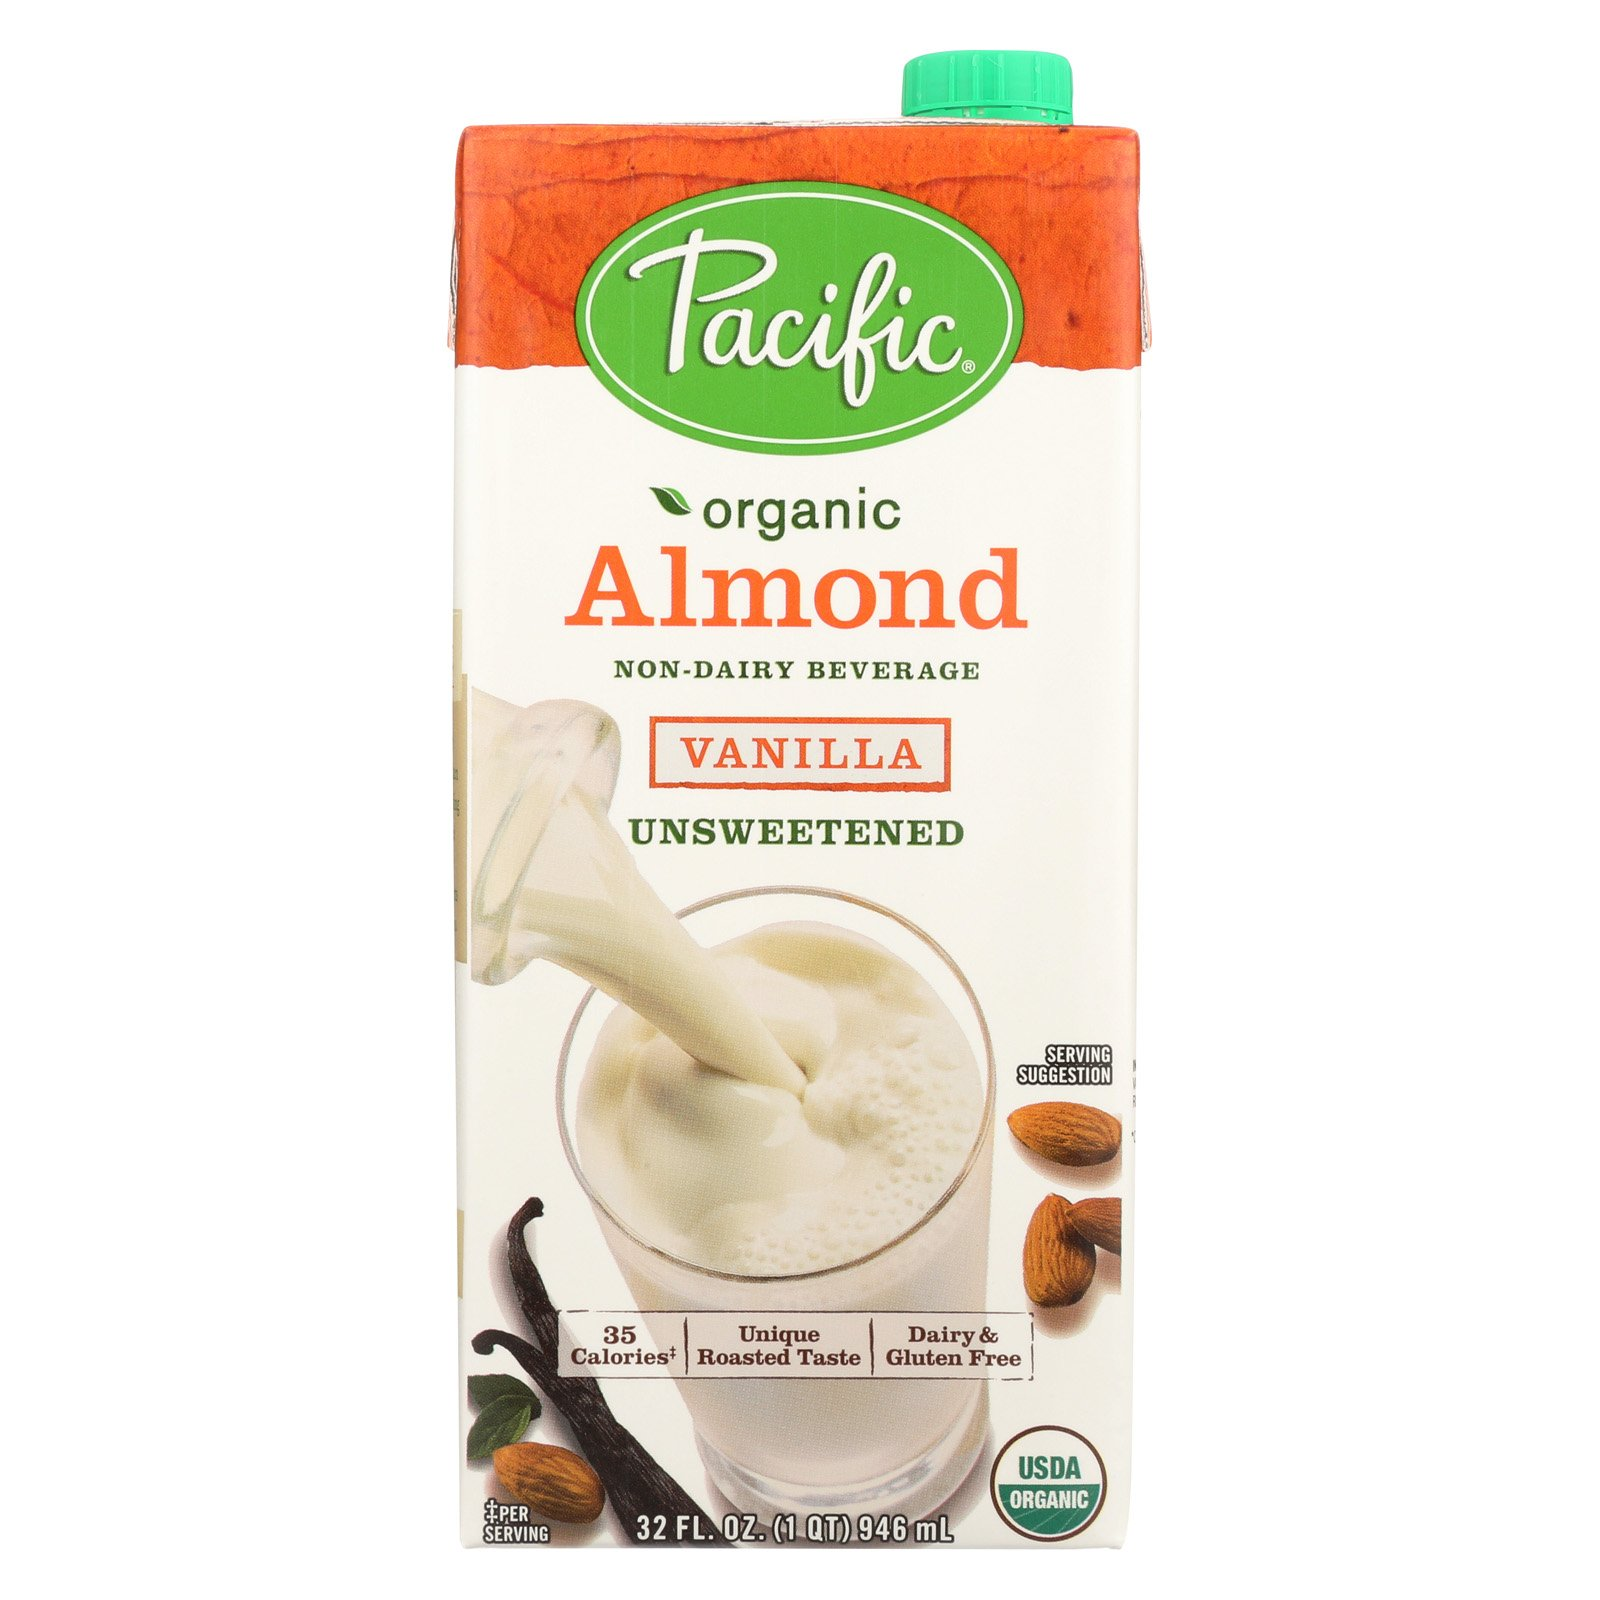 Pacific Natural Foods Almond Vanilla - Unsweetened - Case of 12 - 32 Fl oz.